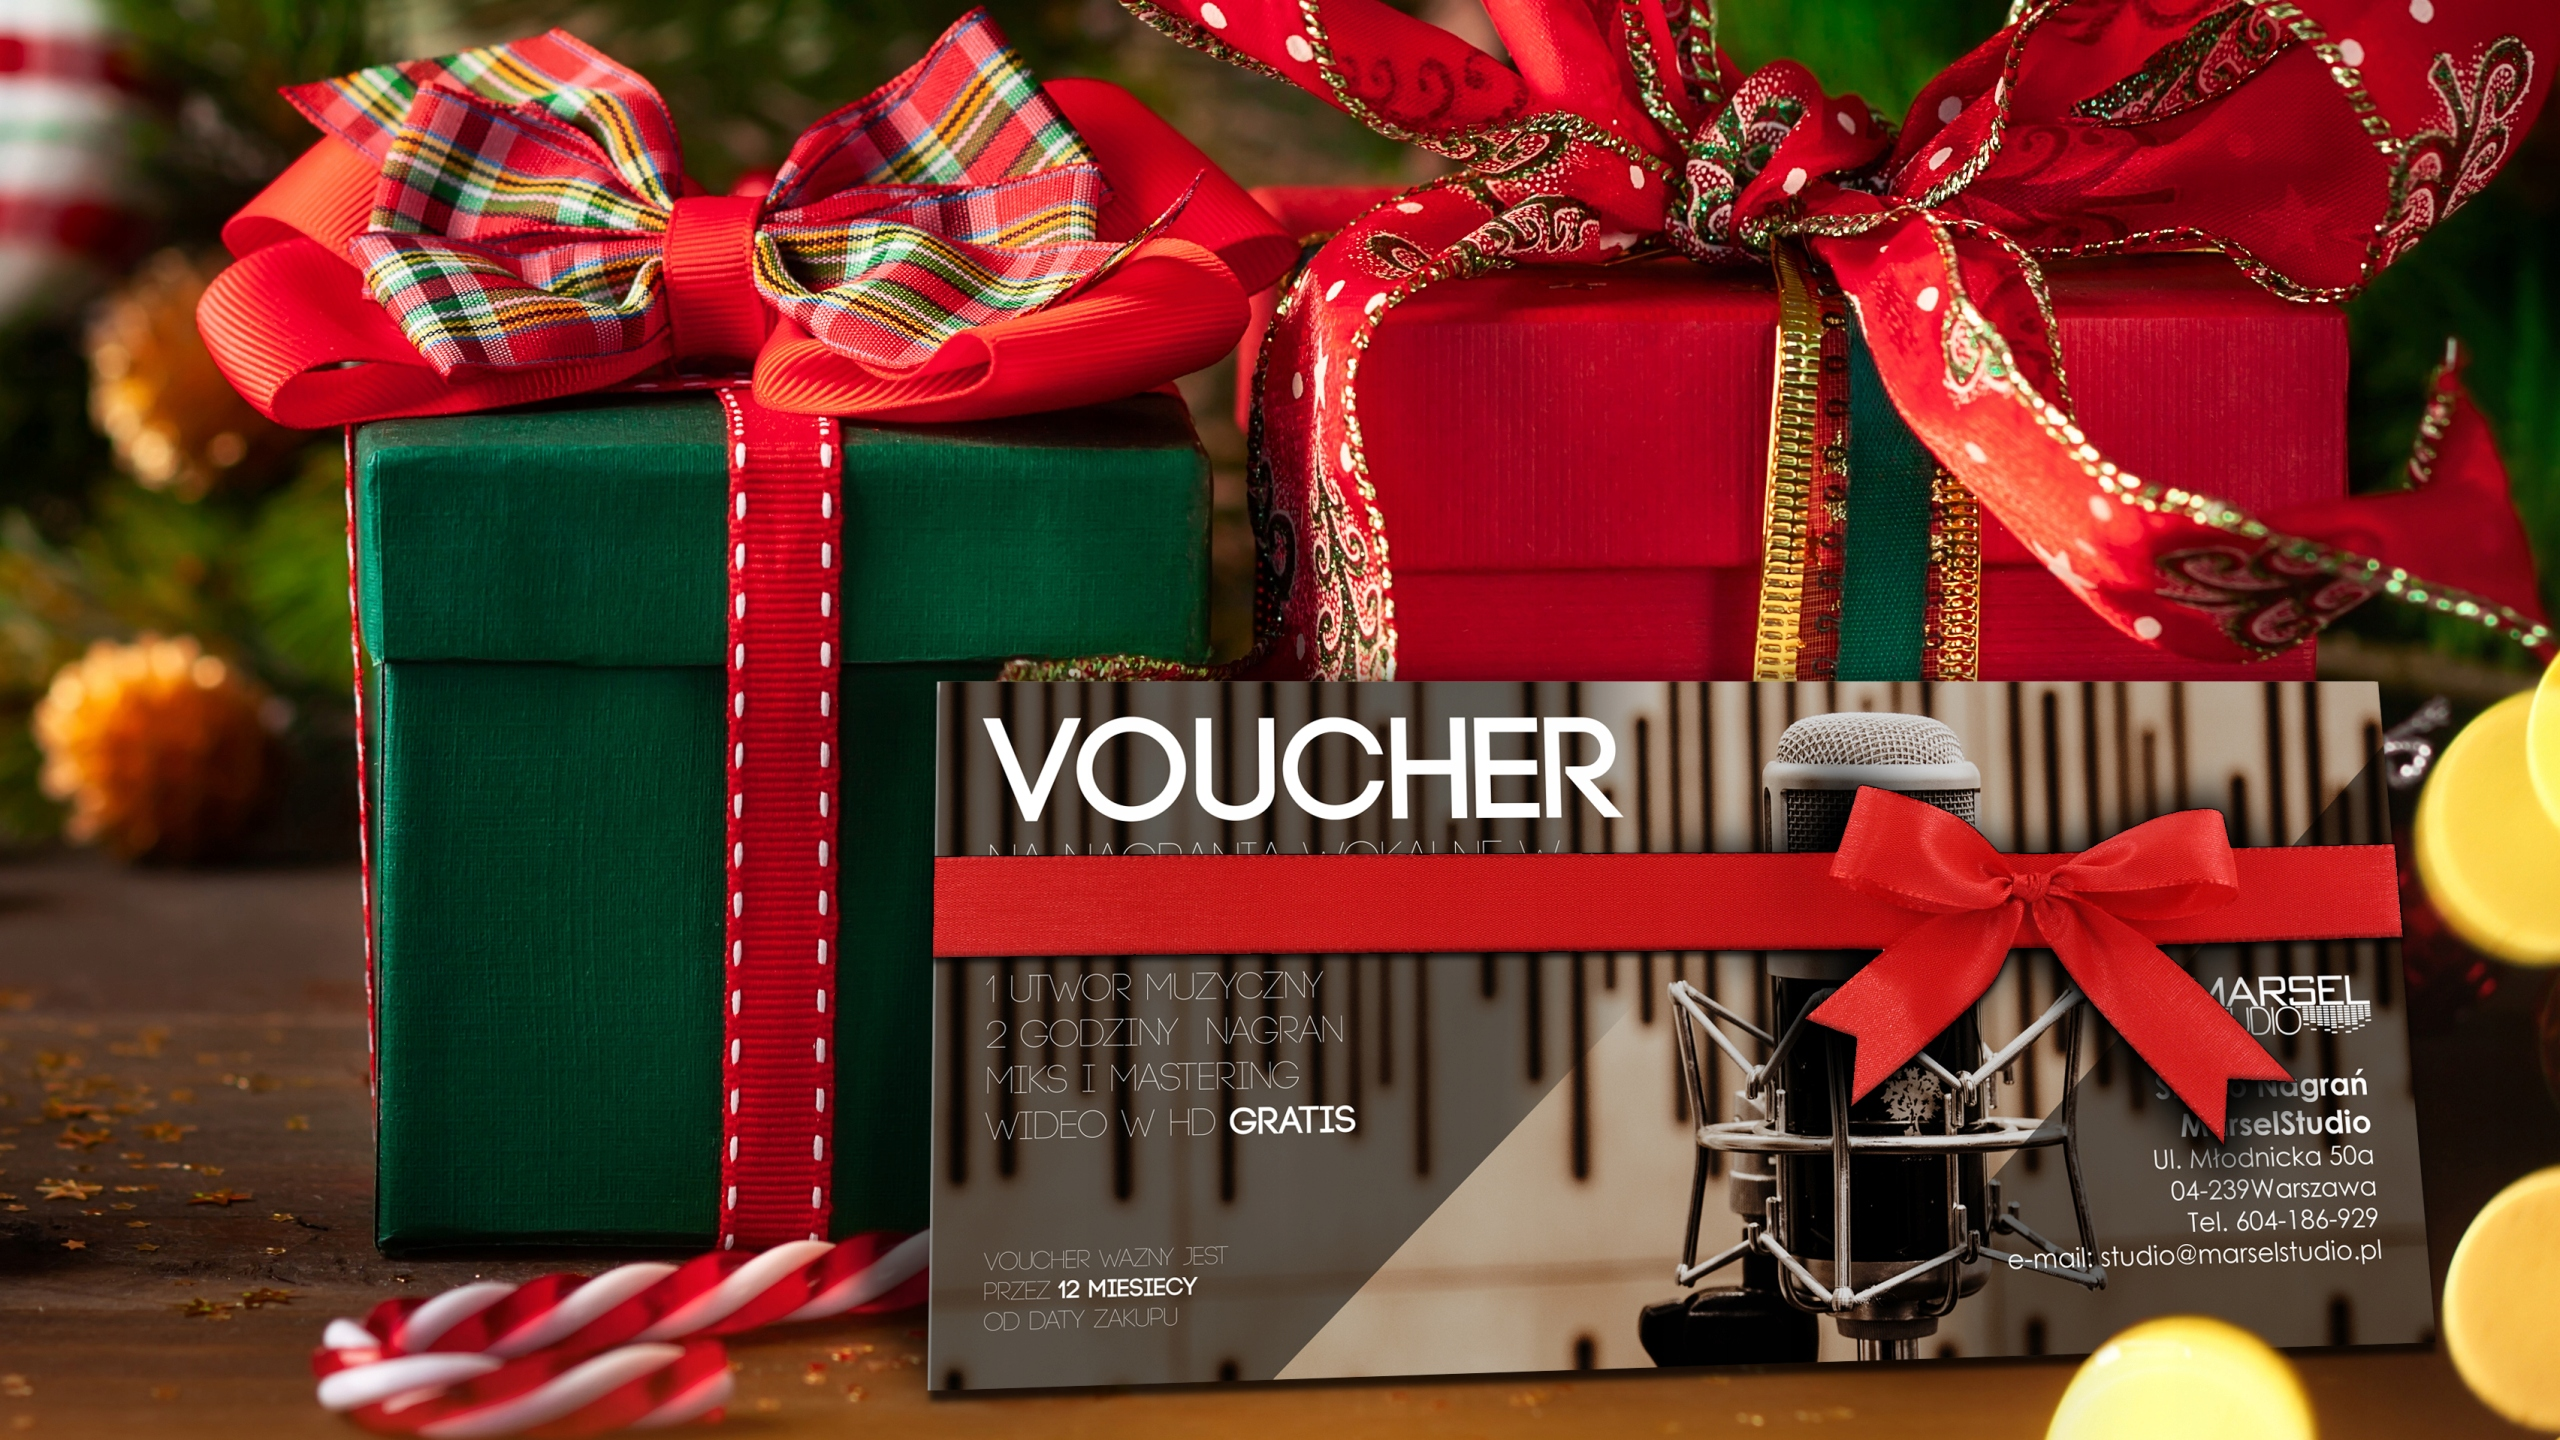 Item A voucher for recording vocals vocals gift certificate gift